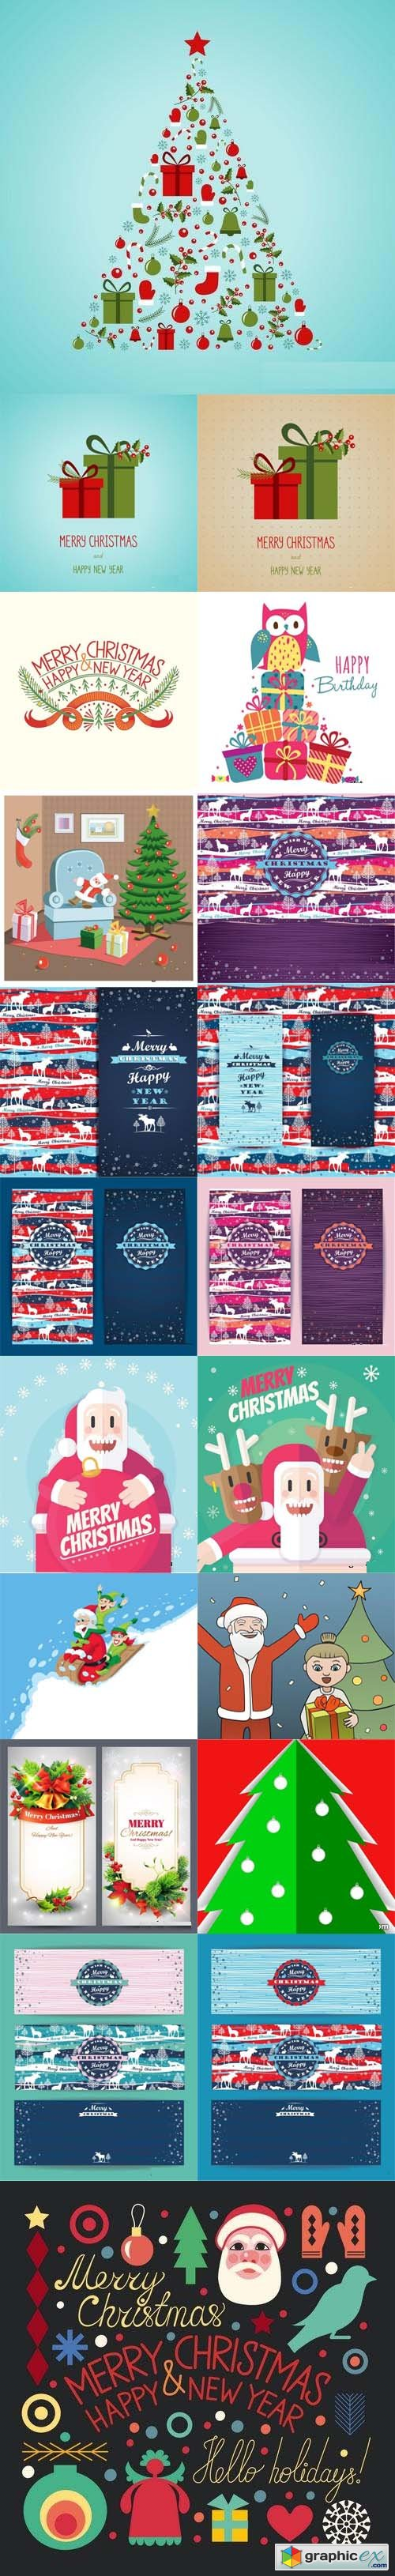 Stock Vector - Christmas Backgrounds 4